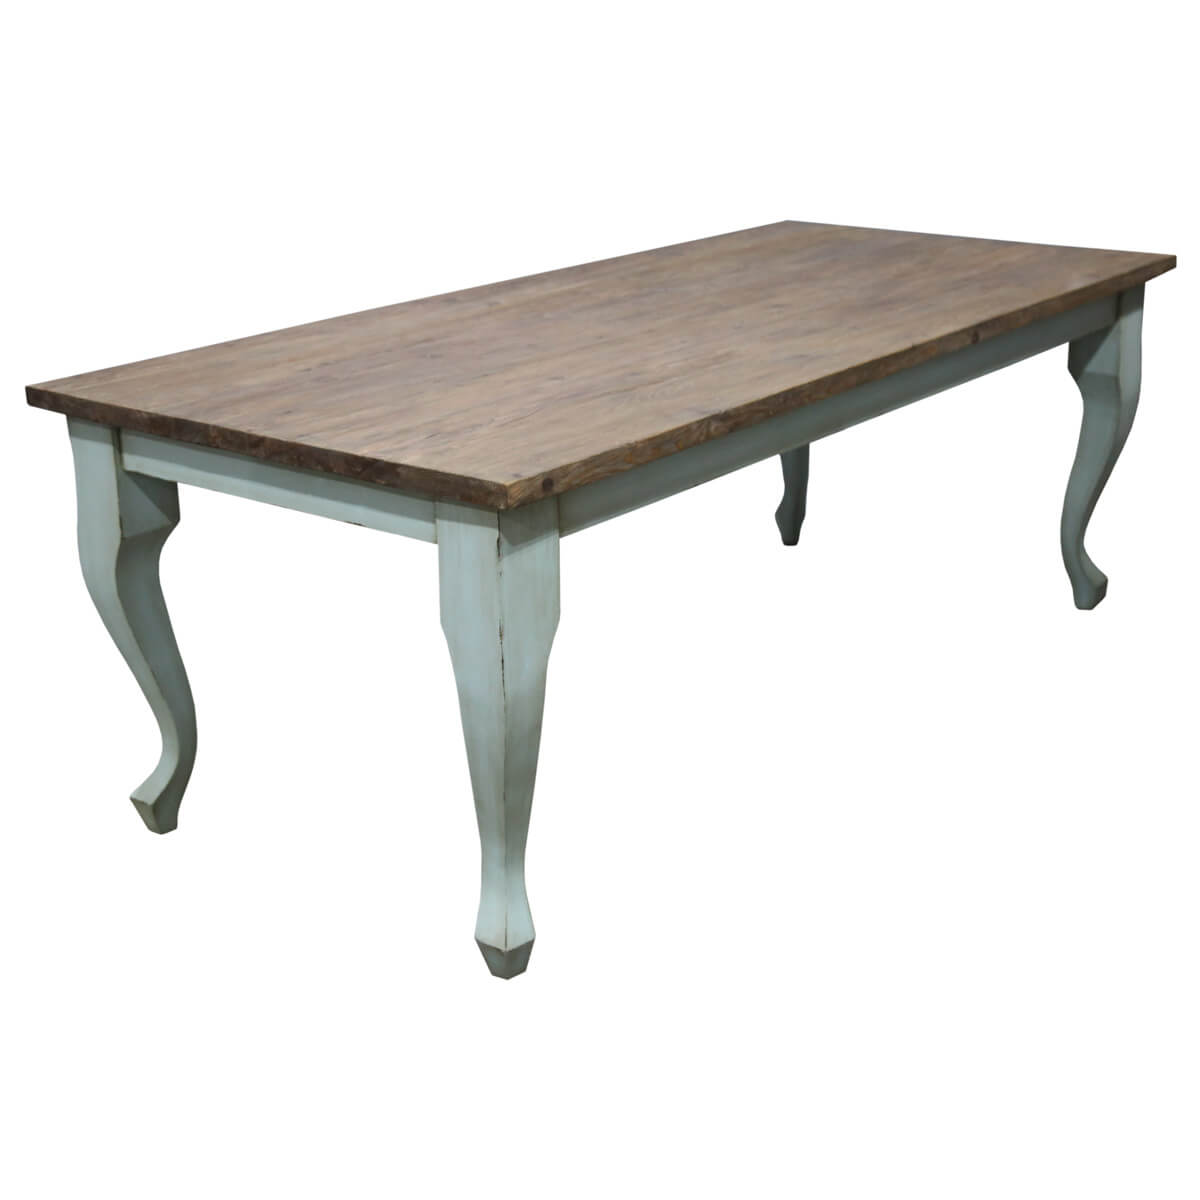 Compton Traditional Two Tone Teak Wood Cabriole Leg Dining Table